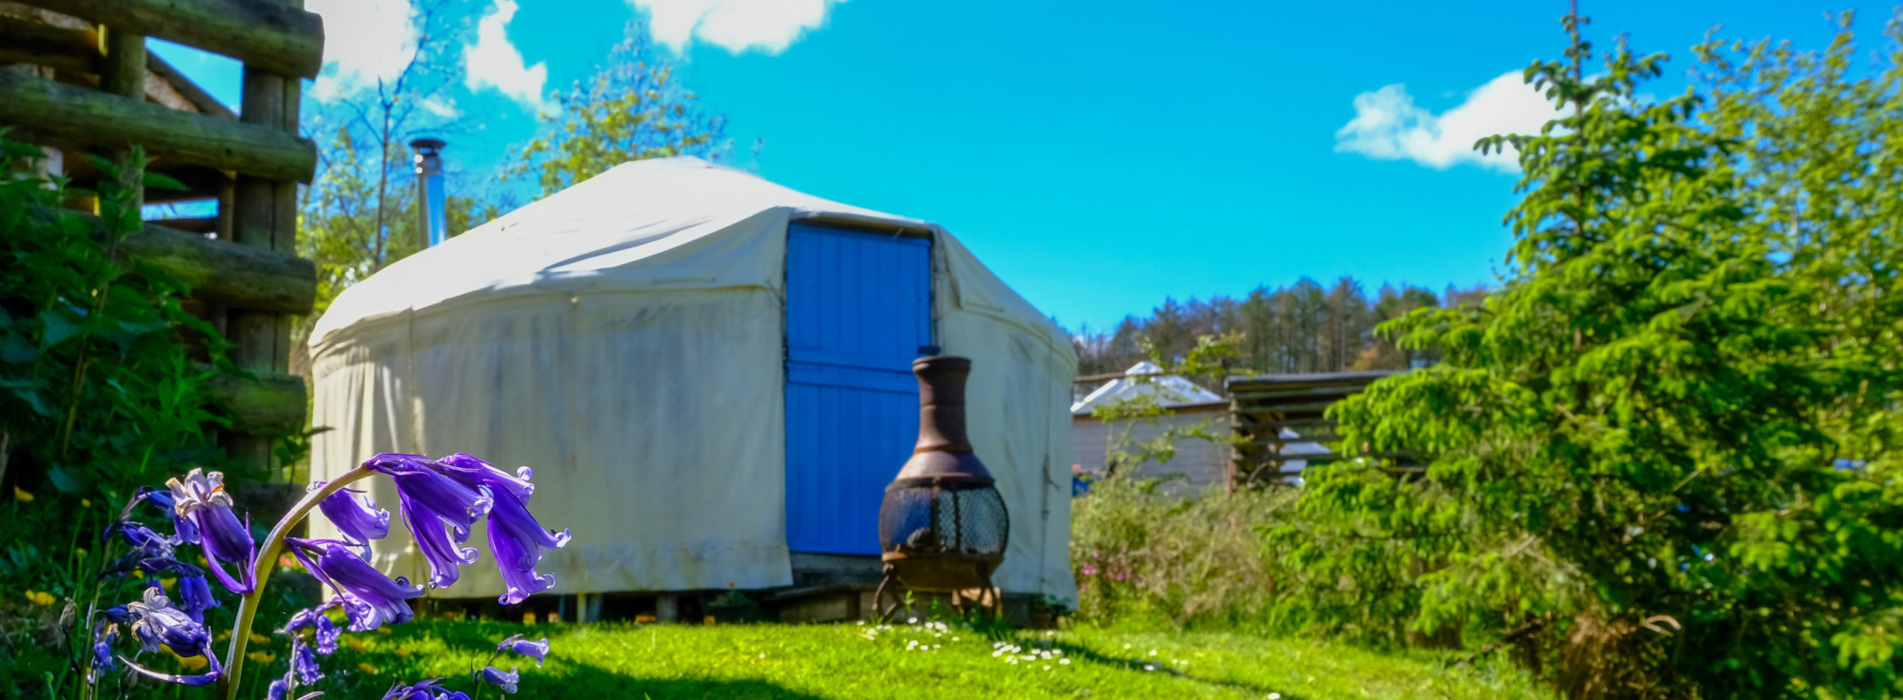 Self-contained Accommodation in Dumfries and Galloway